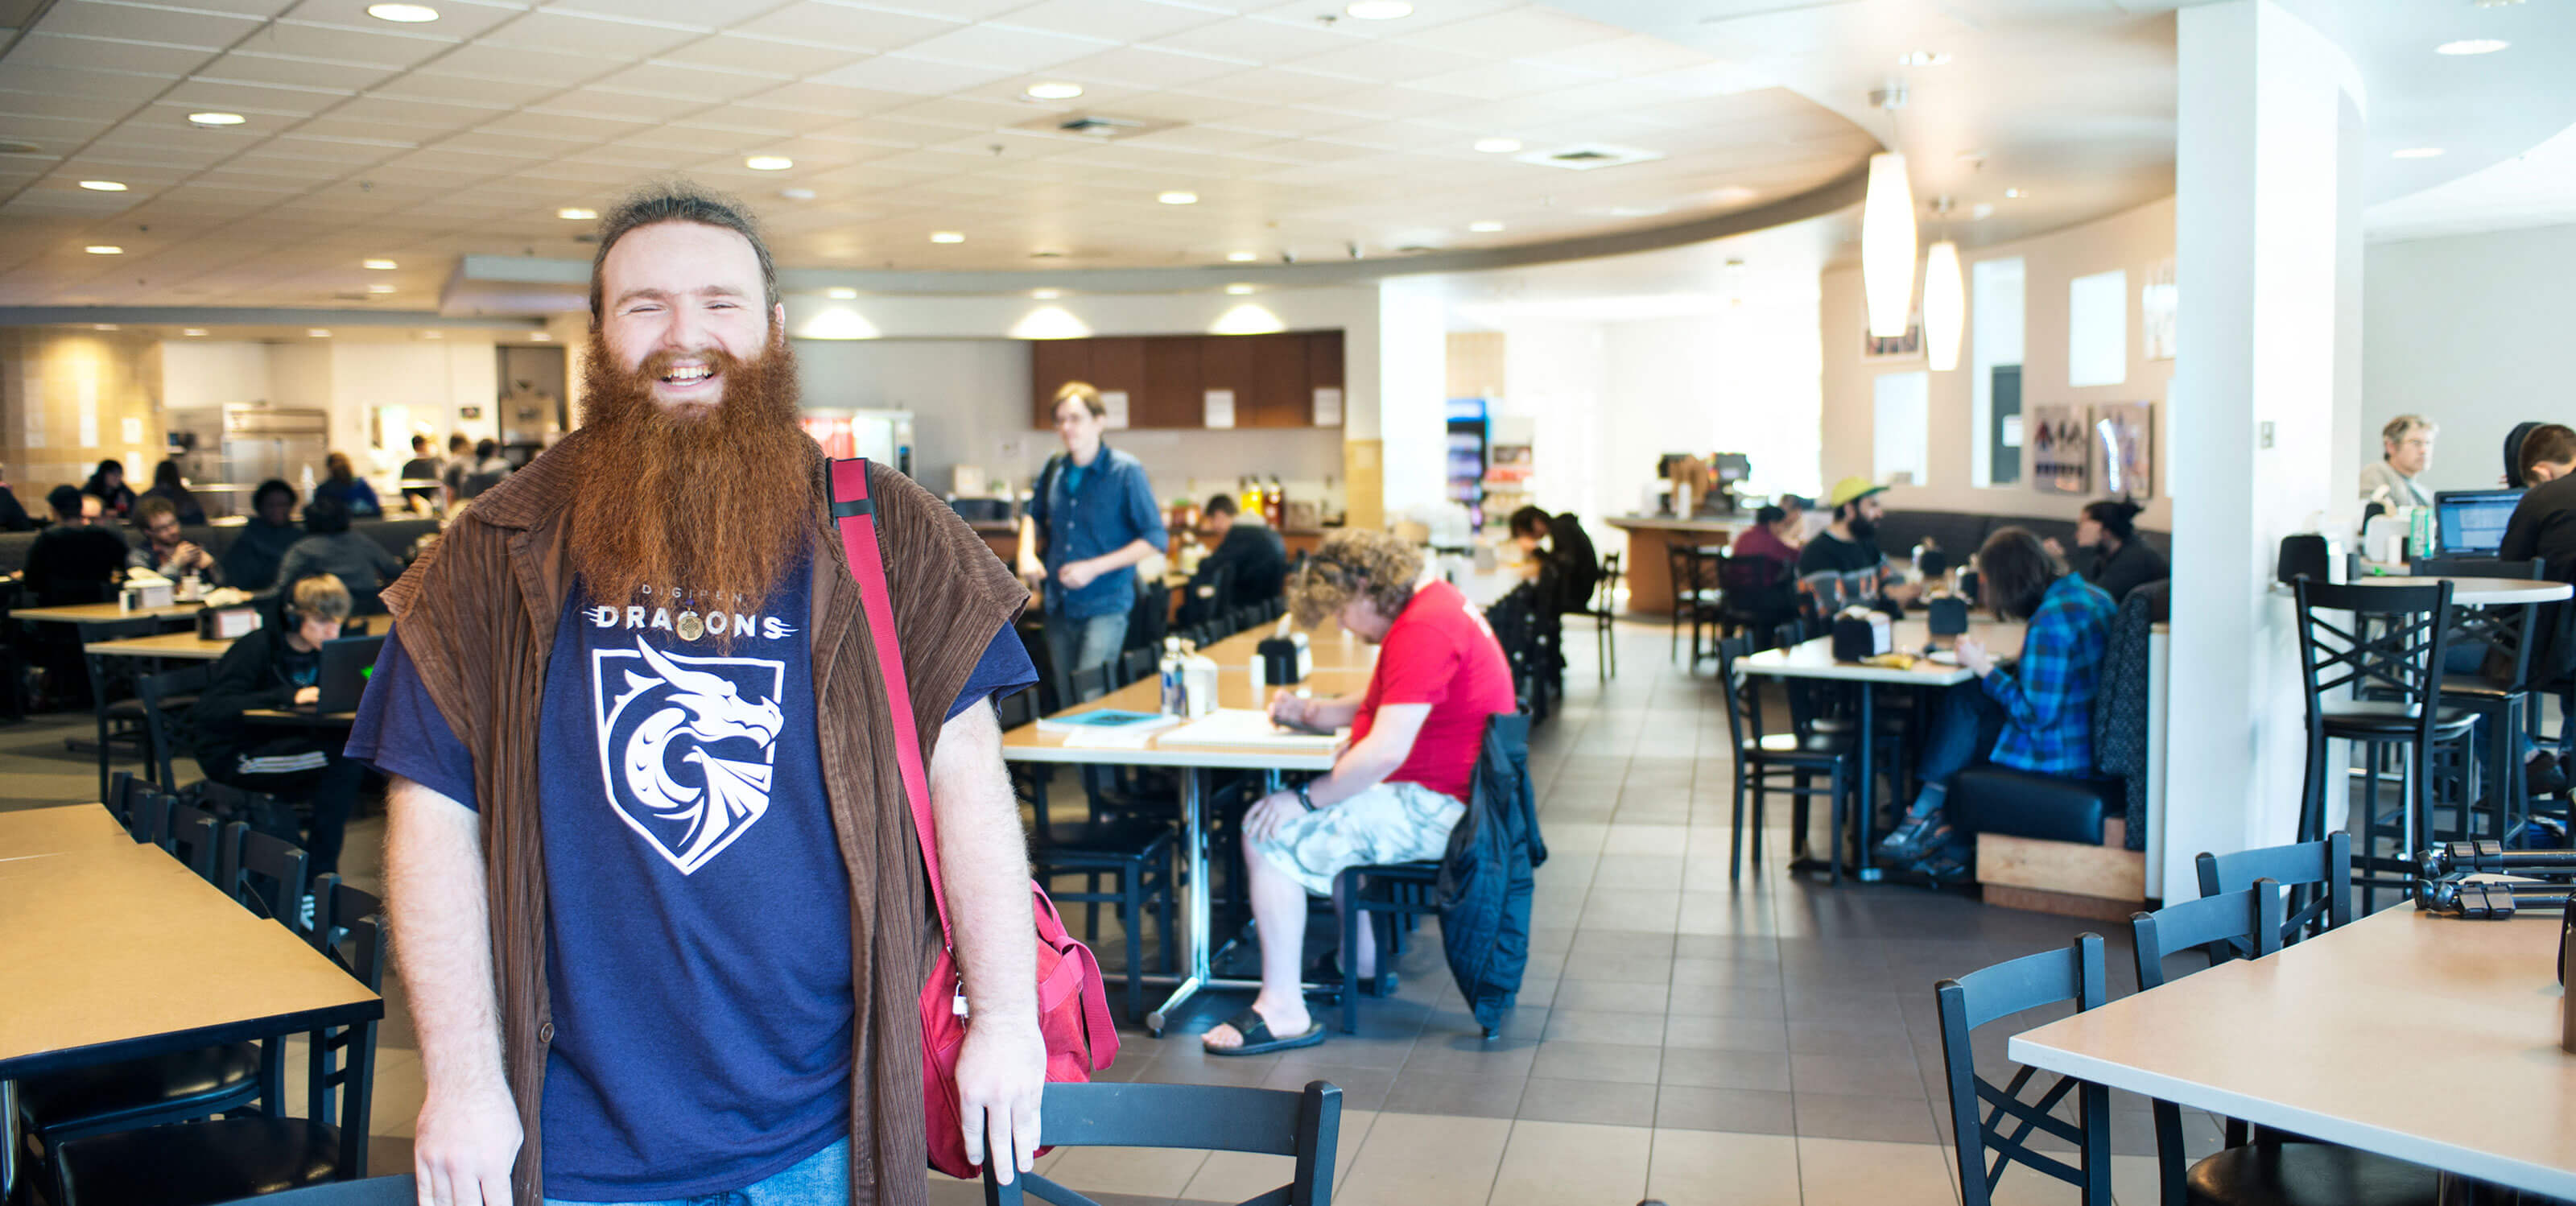 A smiling, bearded man wearing a purple, dragon-logo t-shirt stands in a dining hall where others are seated at tables.